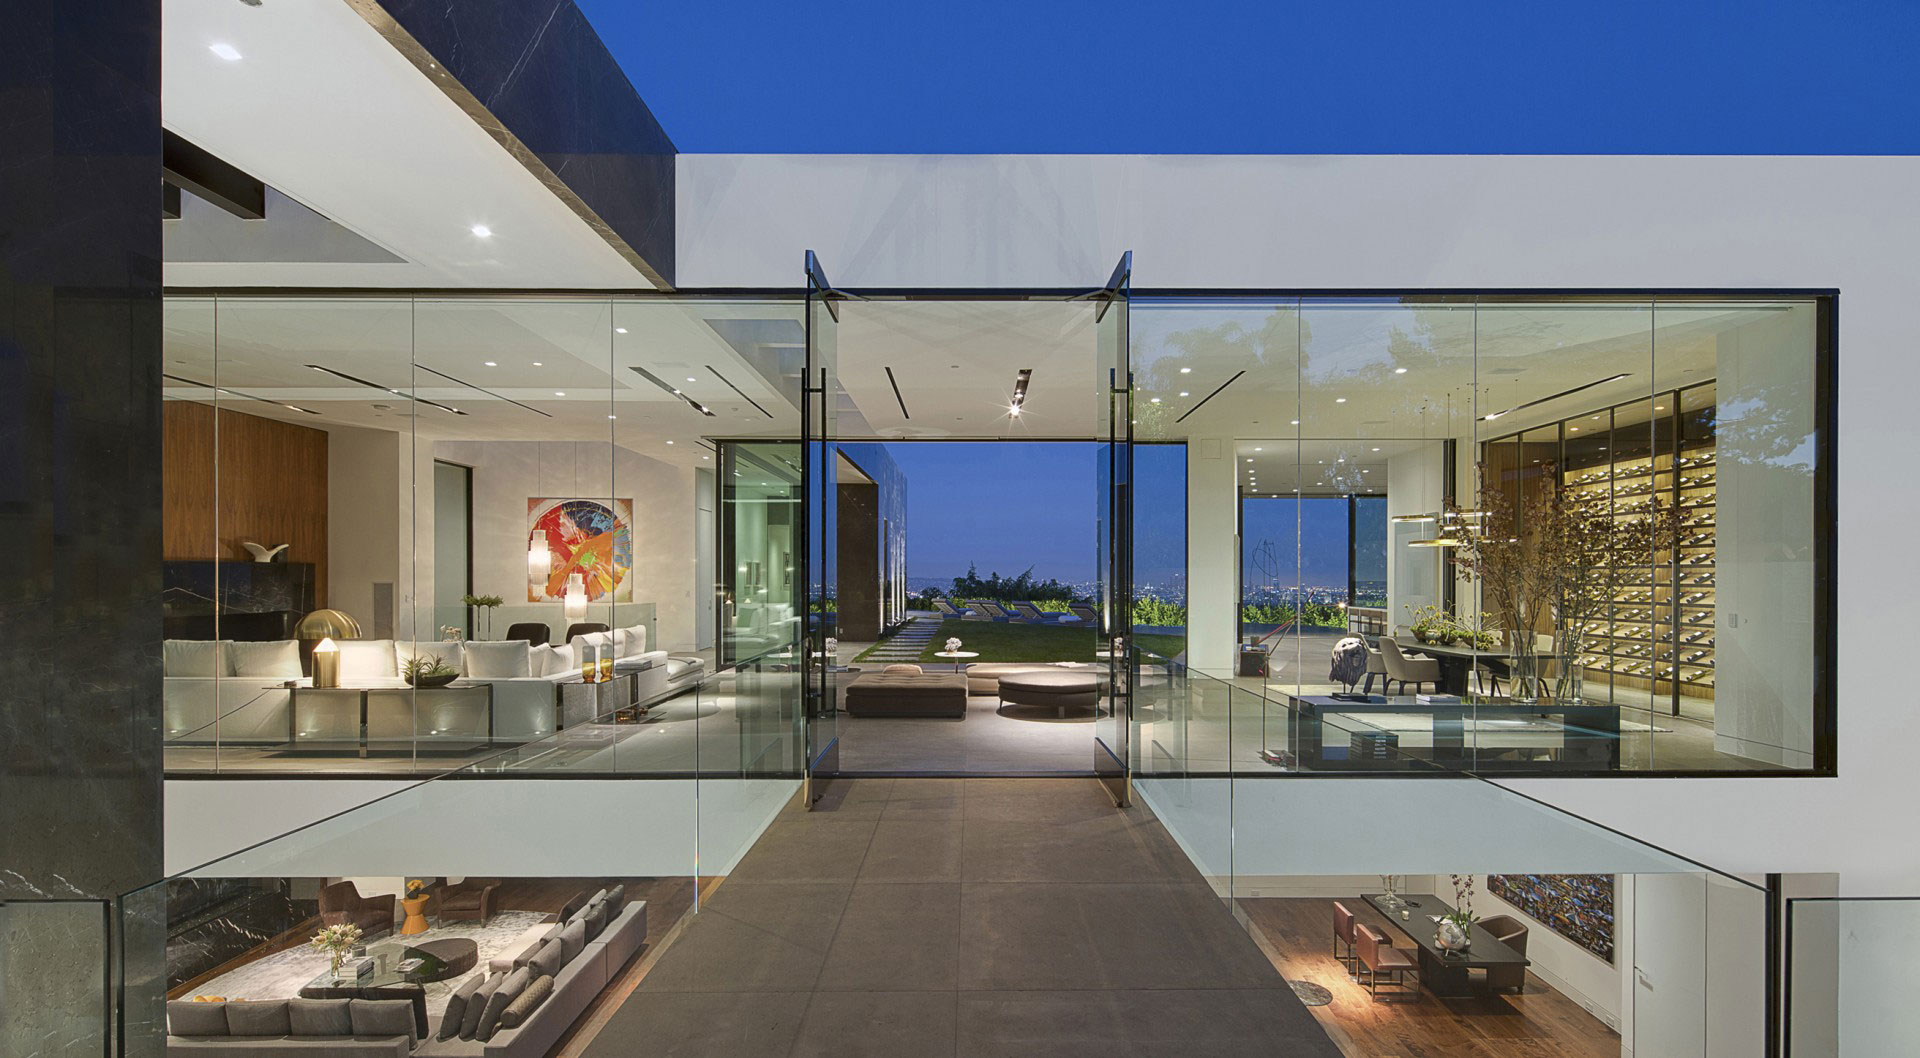 Glass House Design - A dramatic glass home overlooking the l a basin